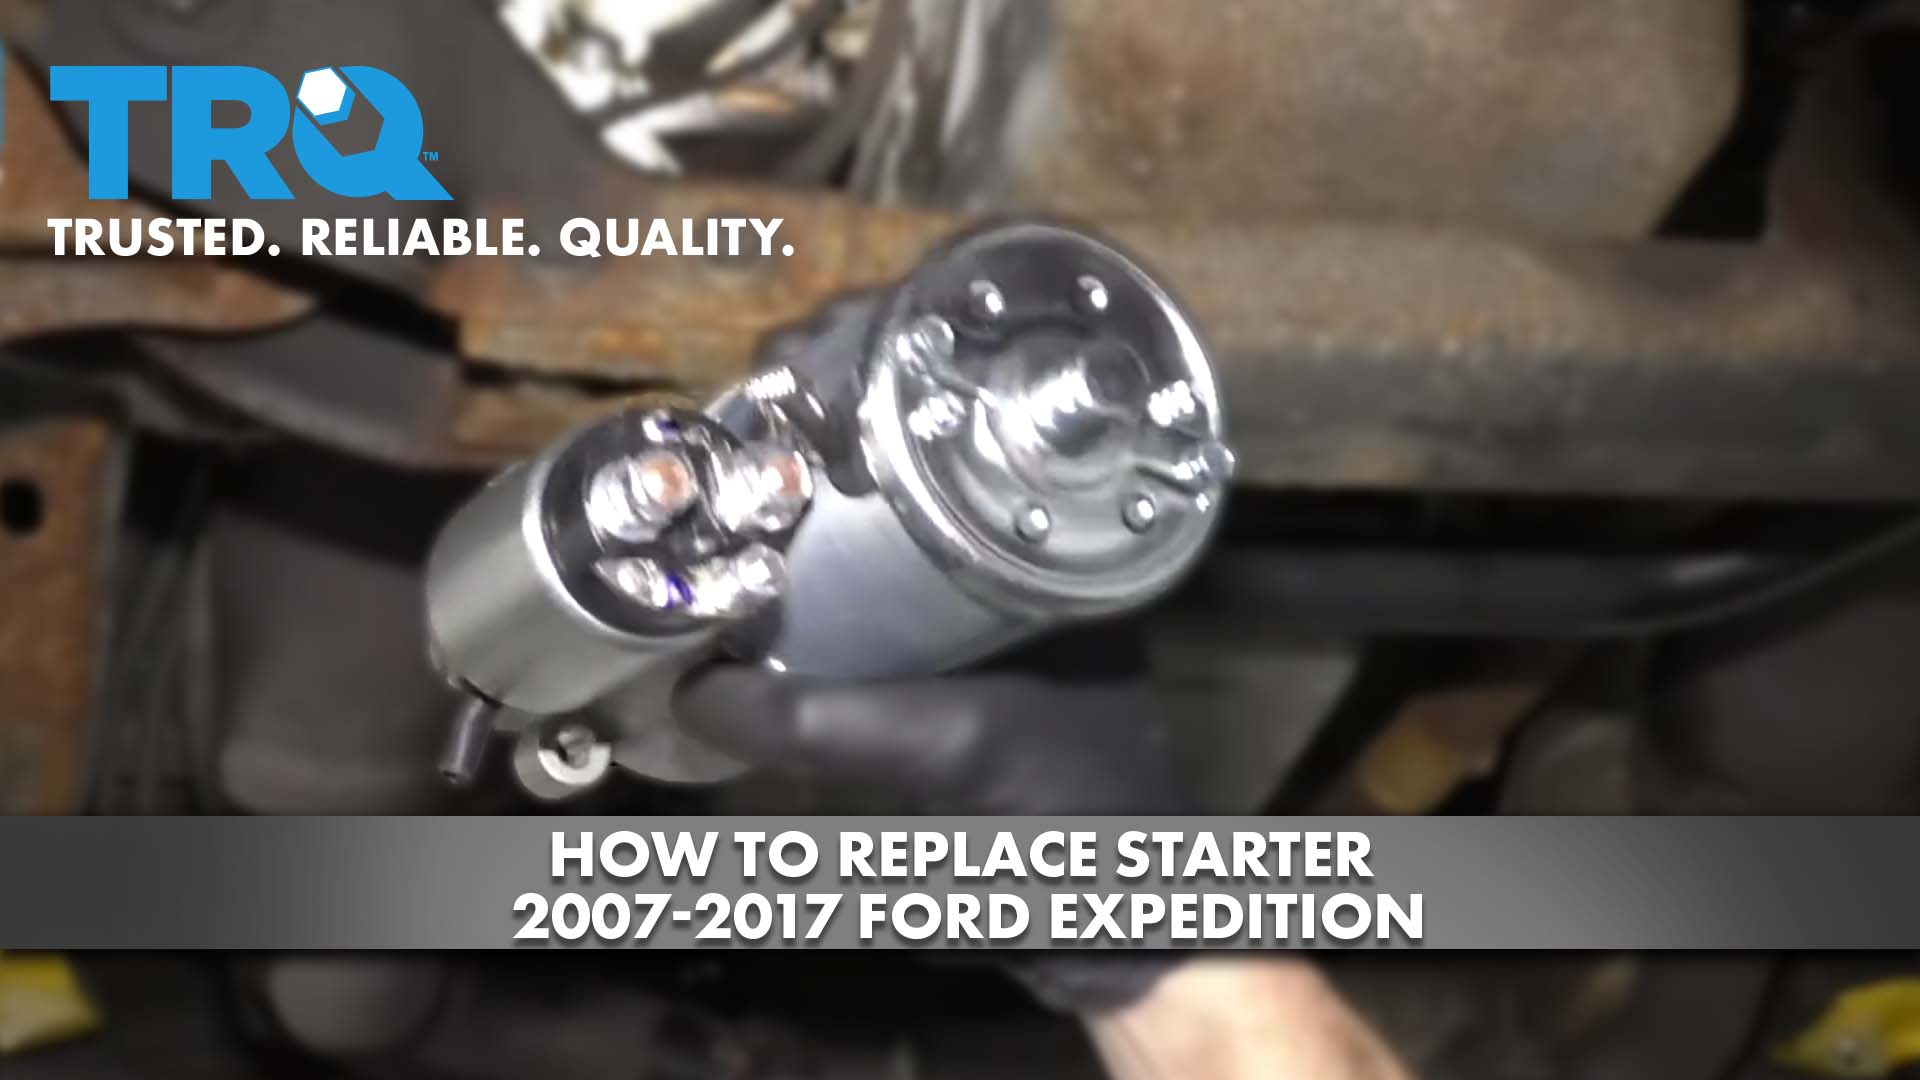 How to Replace Starter 2007-17 Ford Expedition